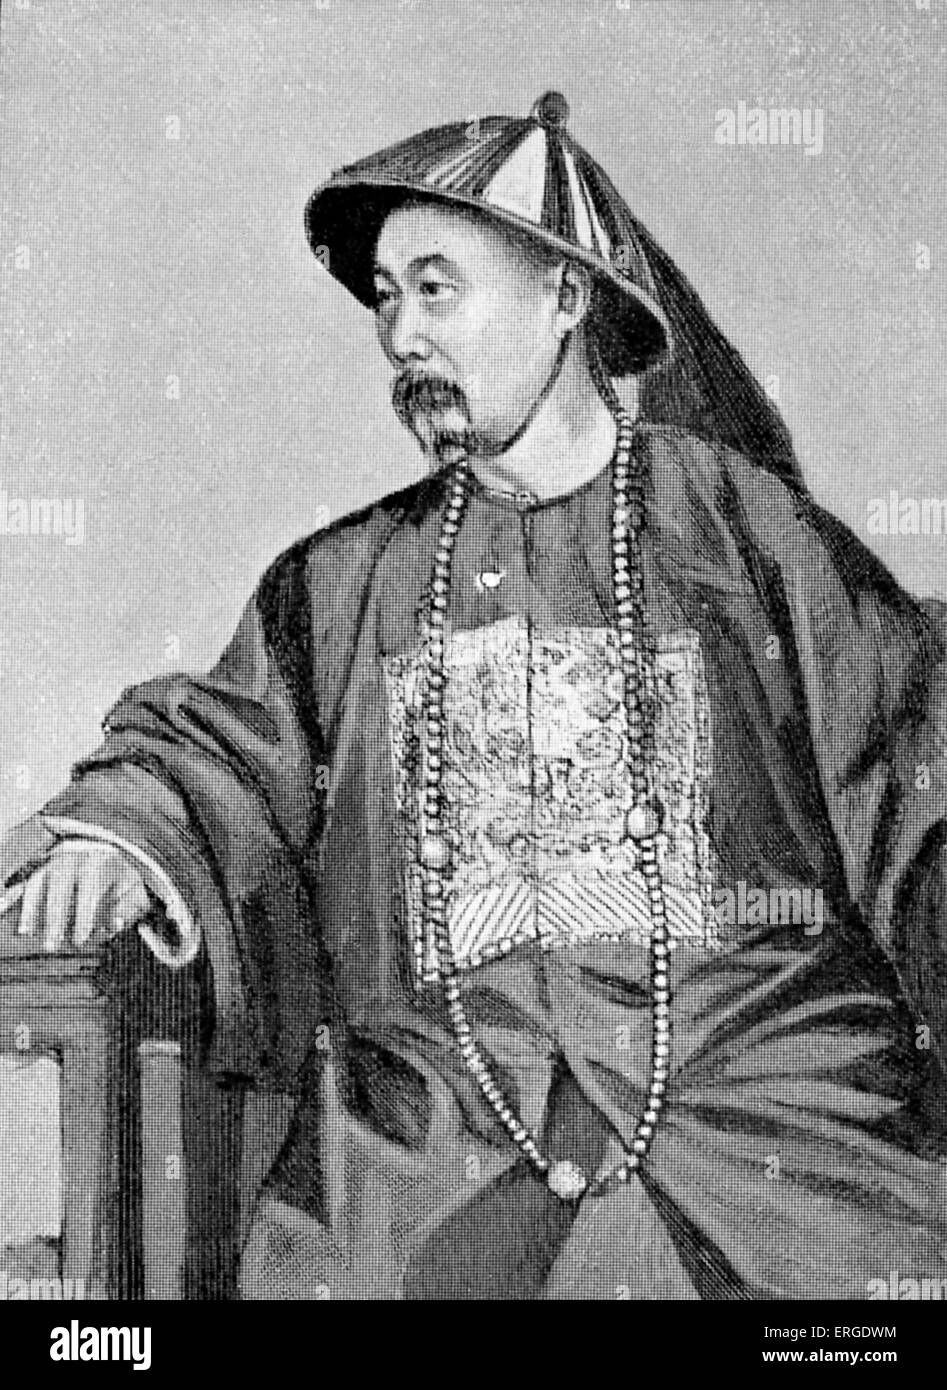 Li Hongzhang - portrait. Leading statesman of the late Qing Empire. He quelled several major rebellions and served - Stock Image